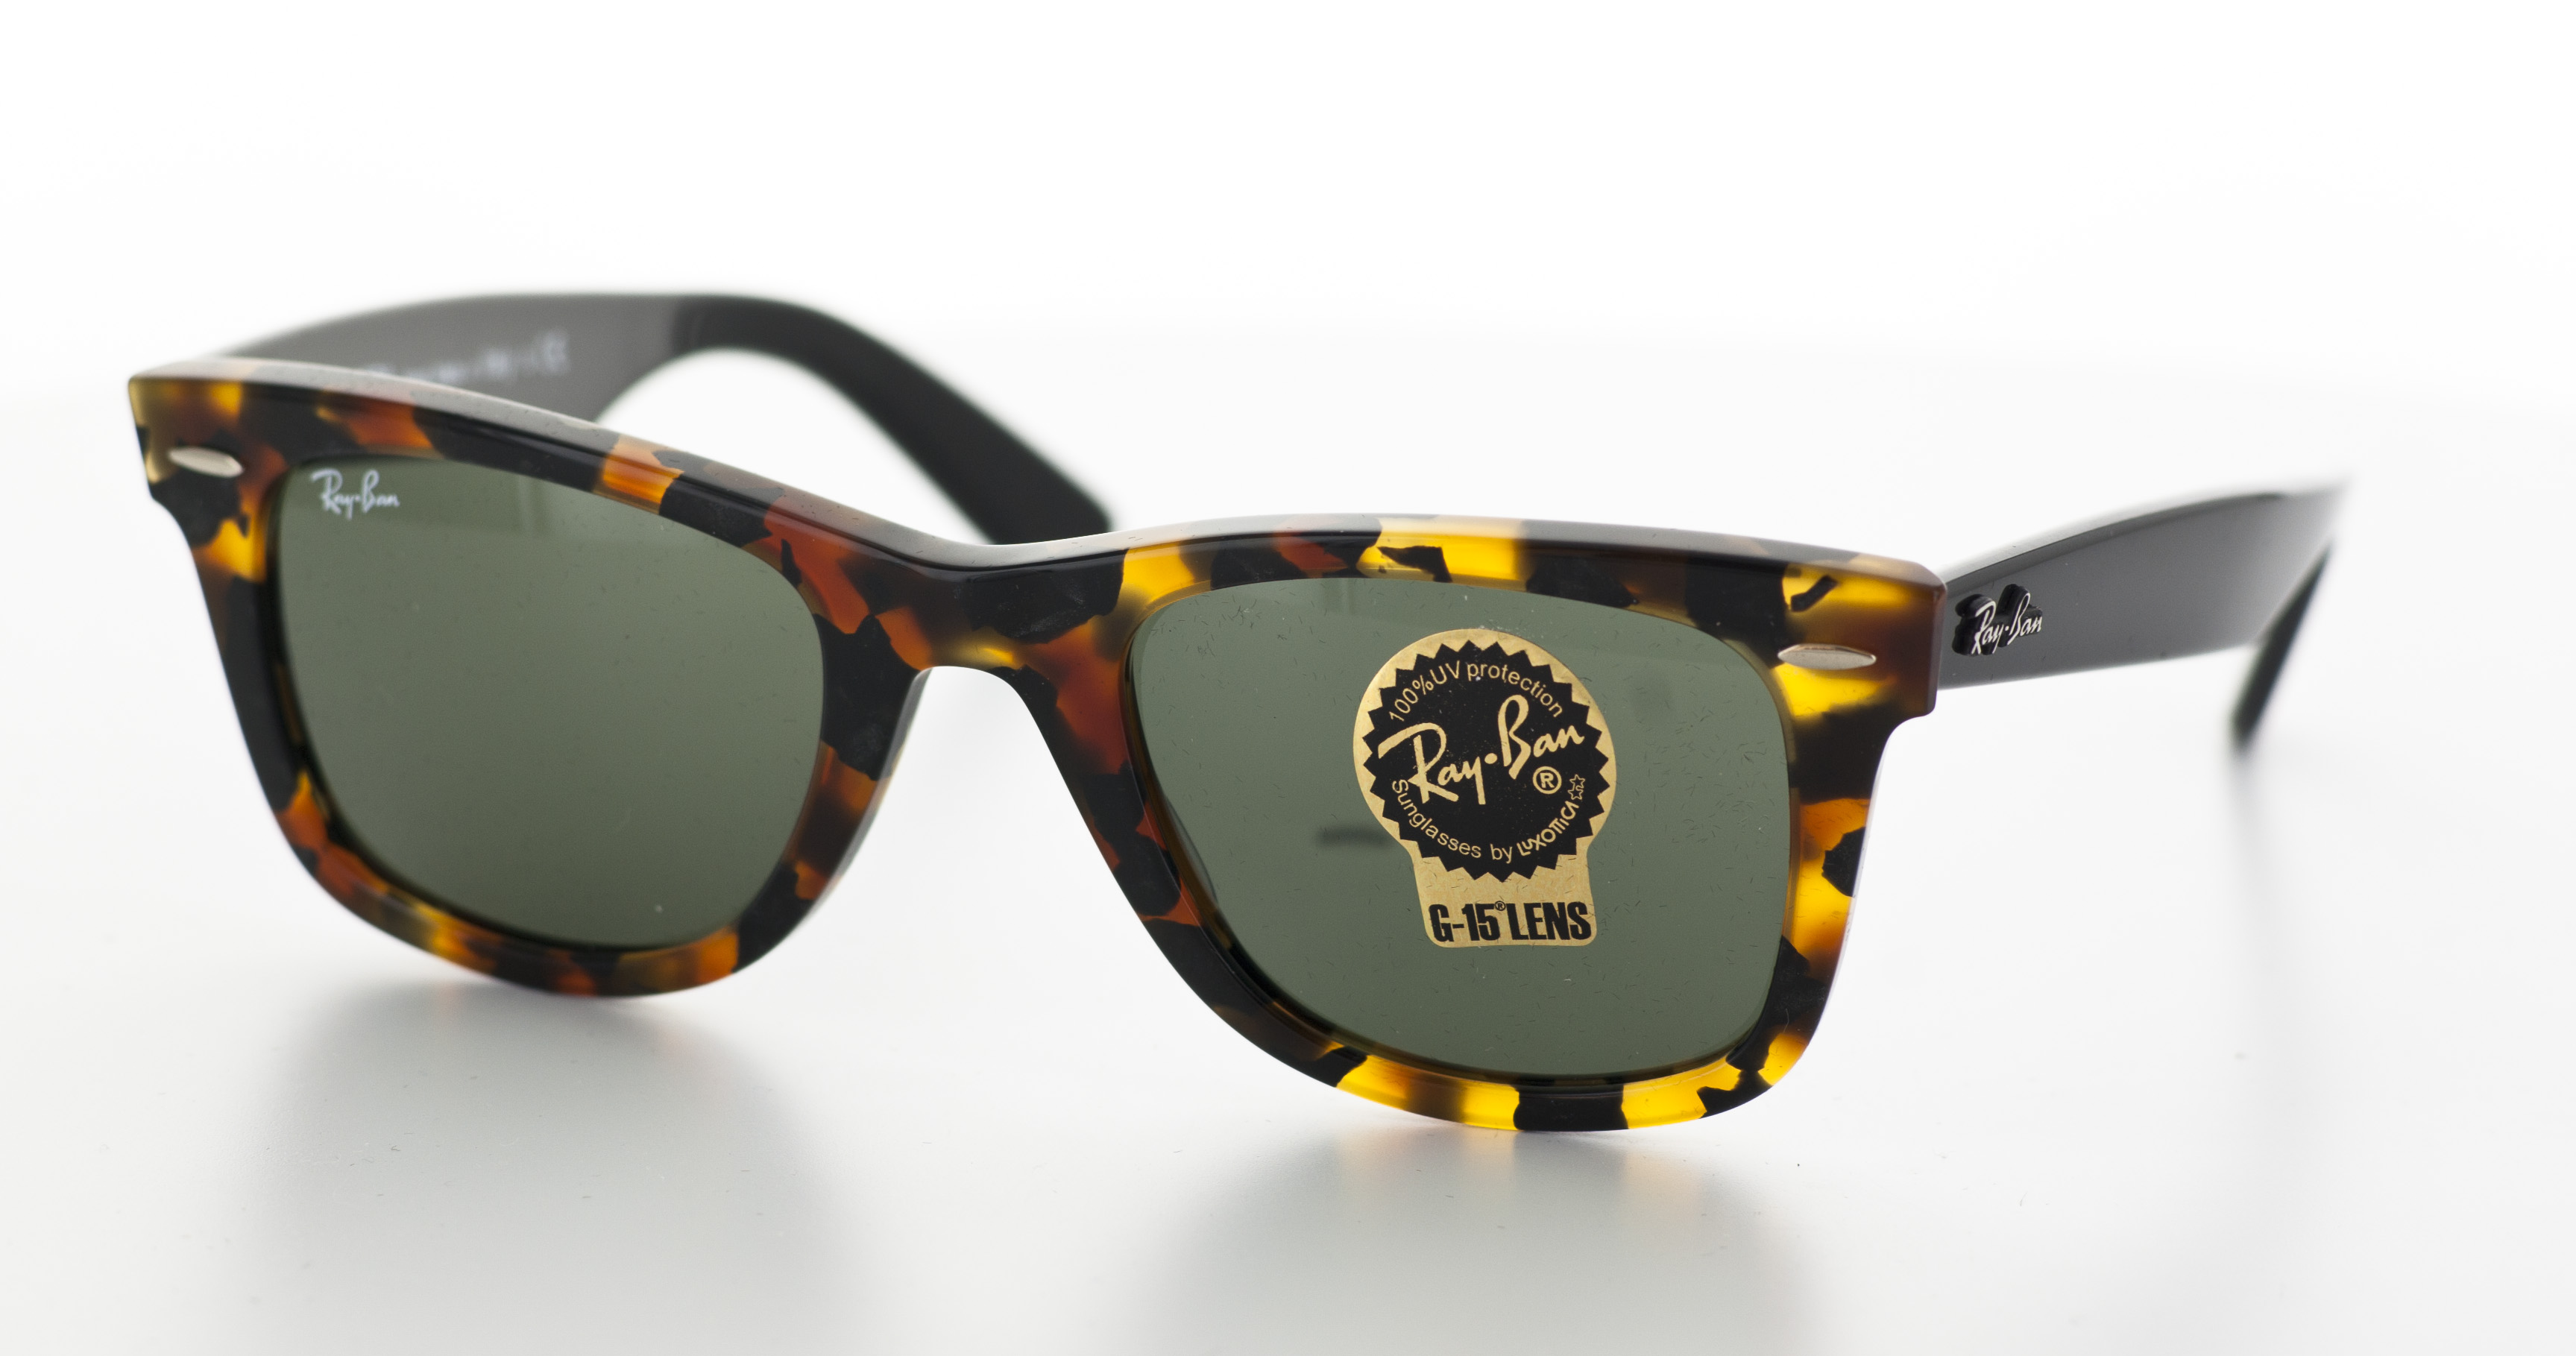 dde55f4f232f Ray Ban Wayfair Red Black Green - Welcome To Miami